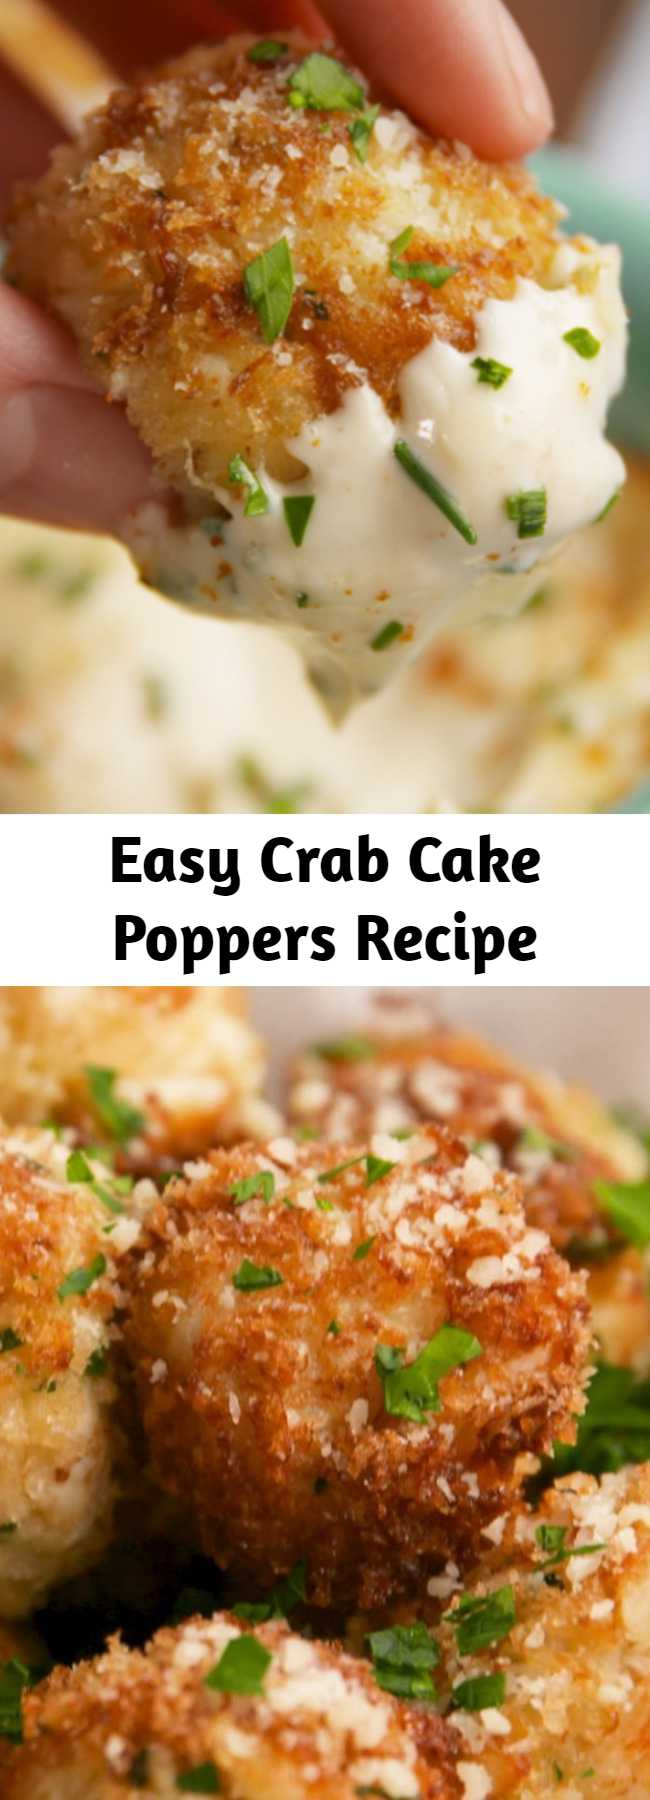 Easy Crab Cake Poppers Recipe - These are basically mini crab cakes that you won't be able to stop eating. #easy #recipe #crab #crabcakes #poppers #bites #seafood #appetizer #party